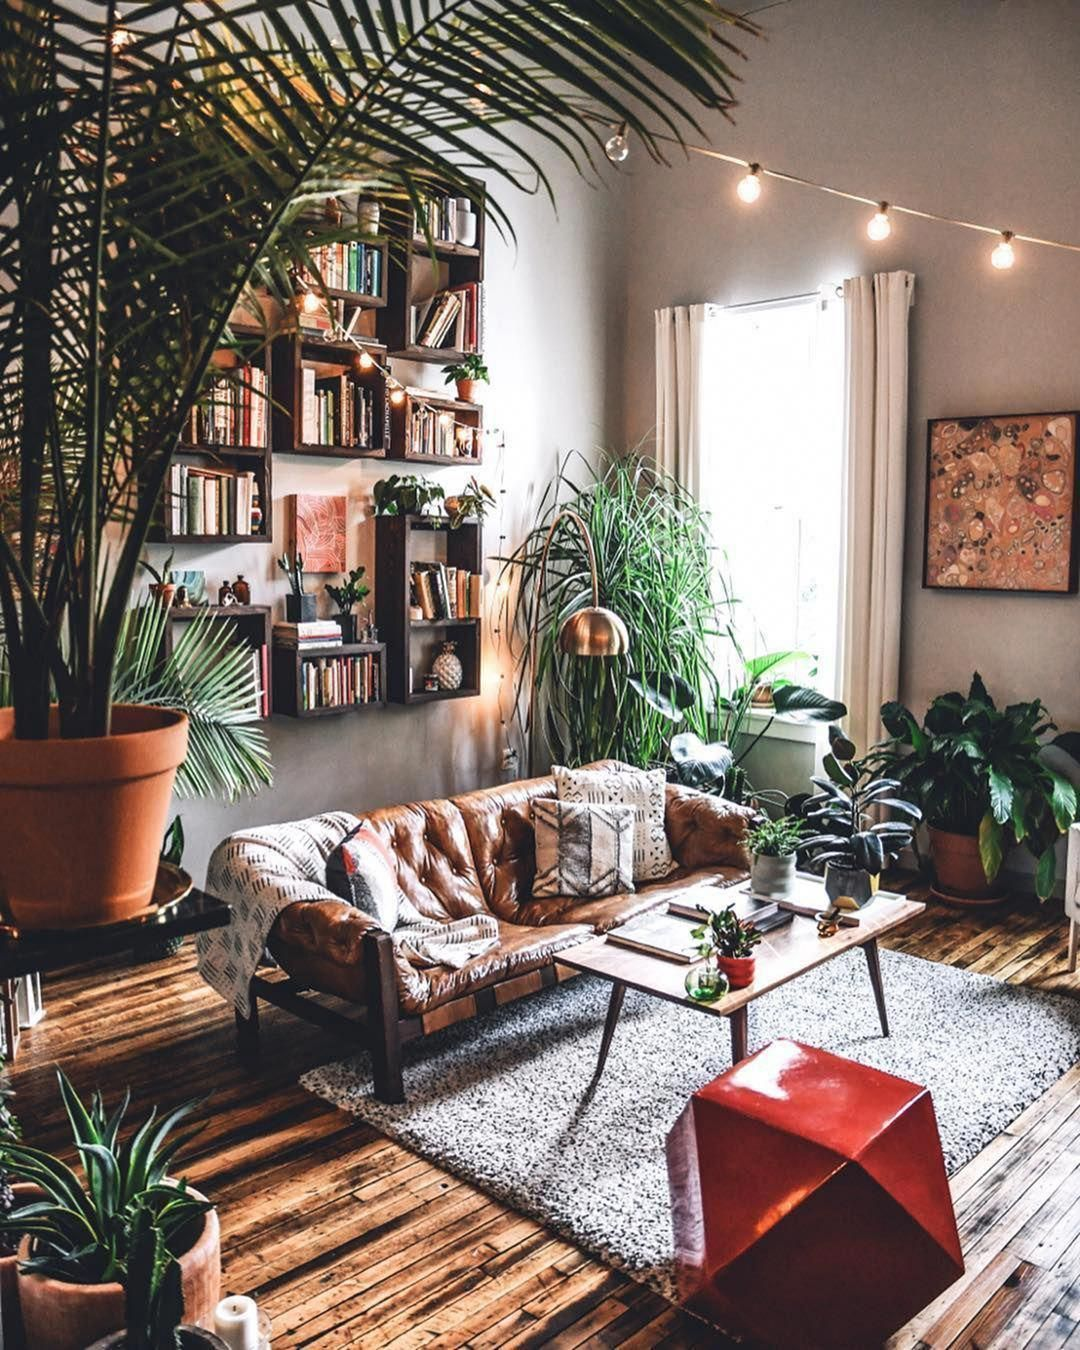 Use These Home Decor Suggestions To Brighten Up Your Home And Give It New Life Home Designing Is Exciting And Wil In 2020 Home Decor Interior Design Living Room Decor